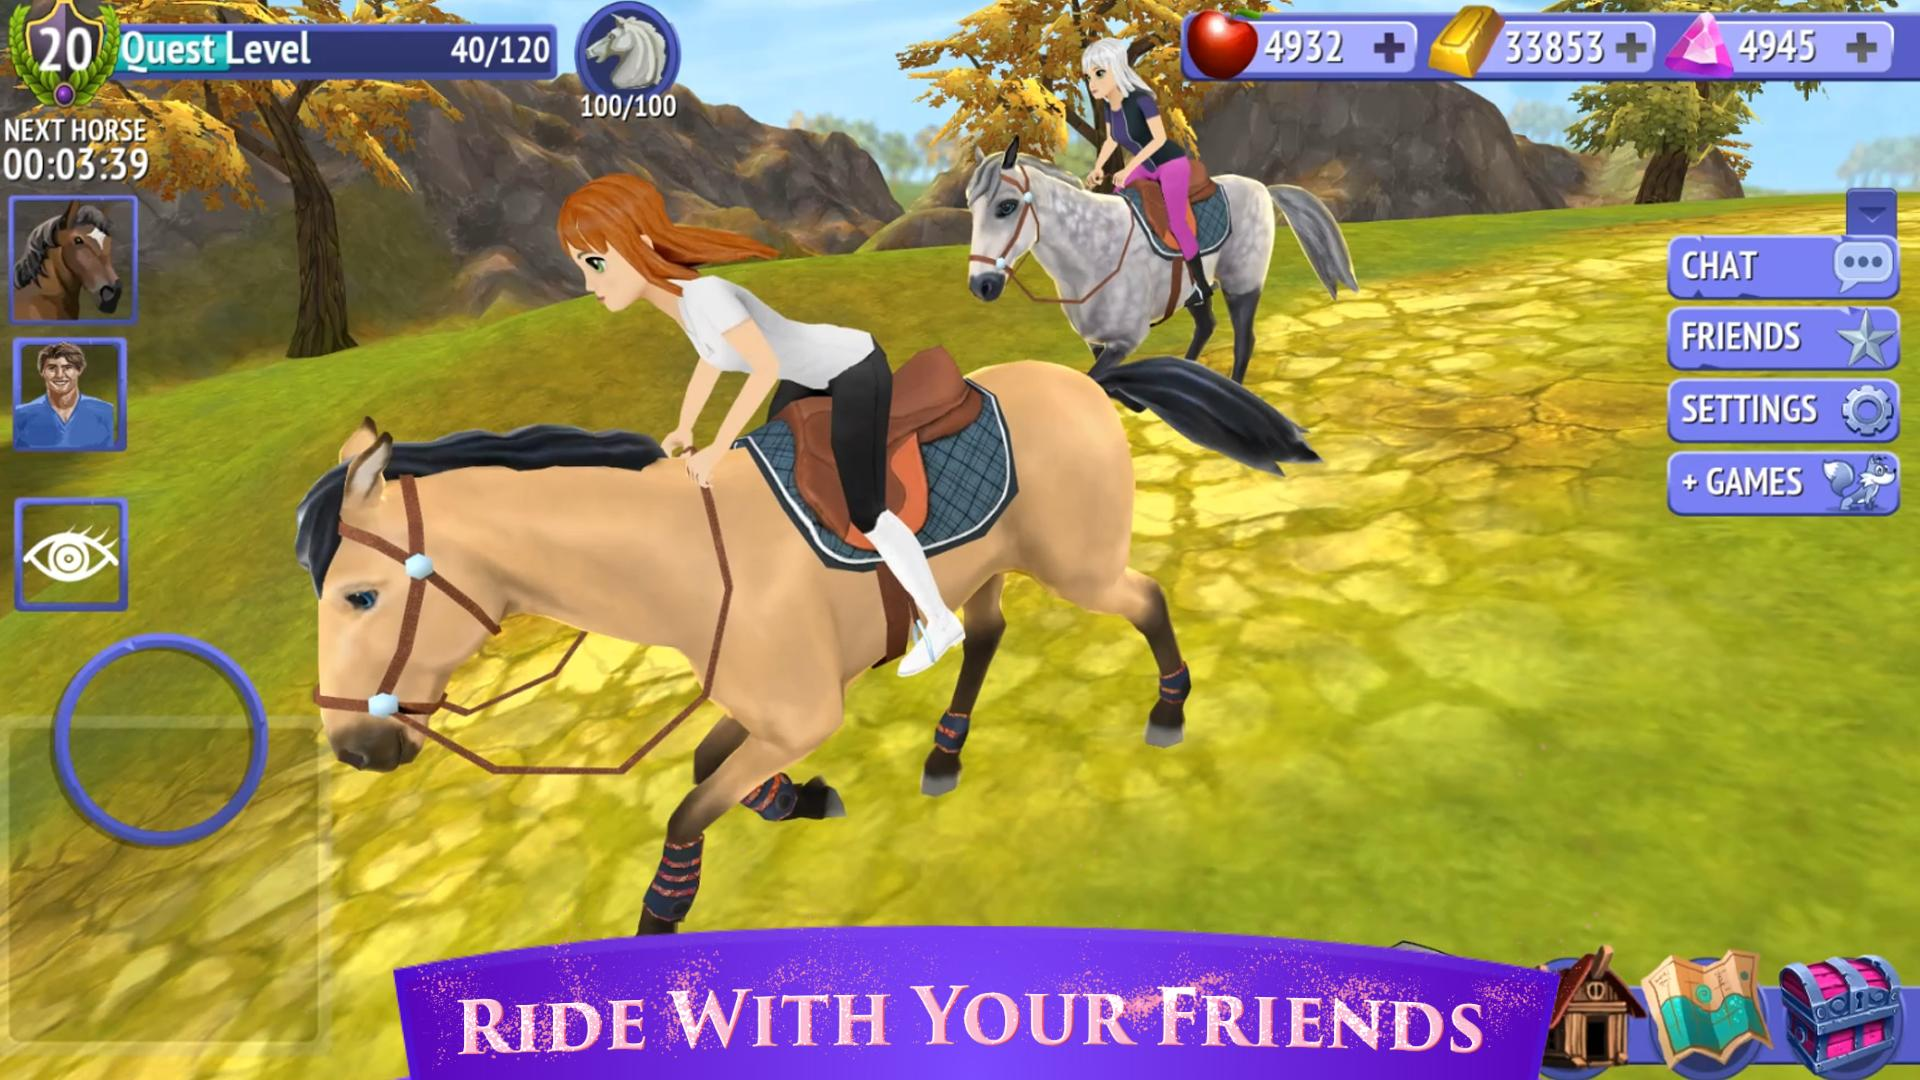 Horse Riding Tales - Ride With Friends 780 Screenshot 4